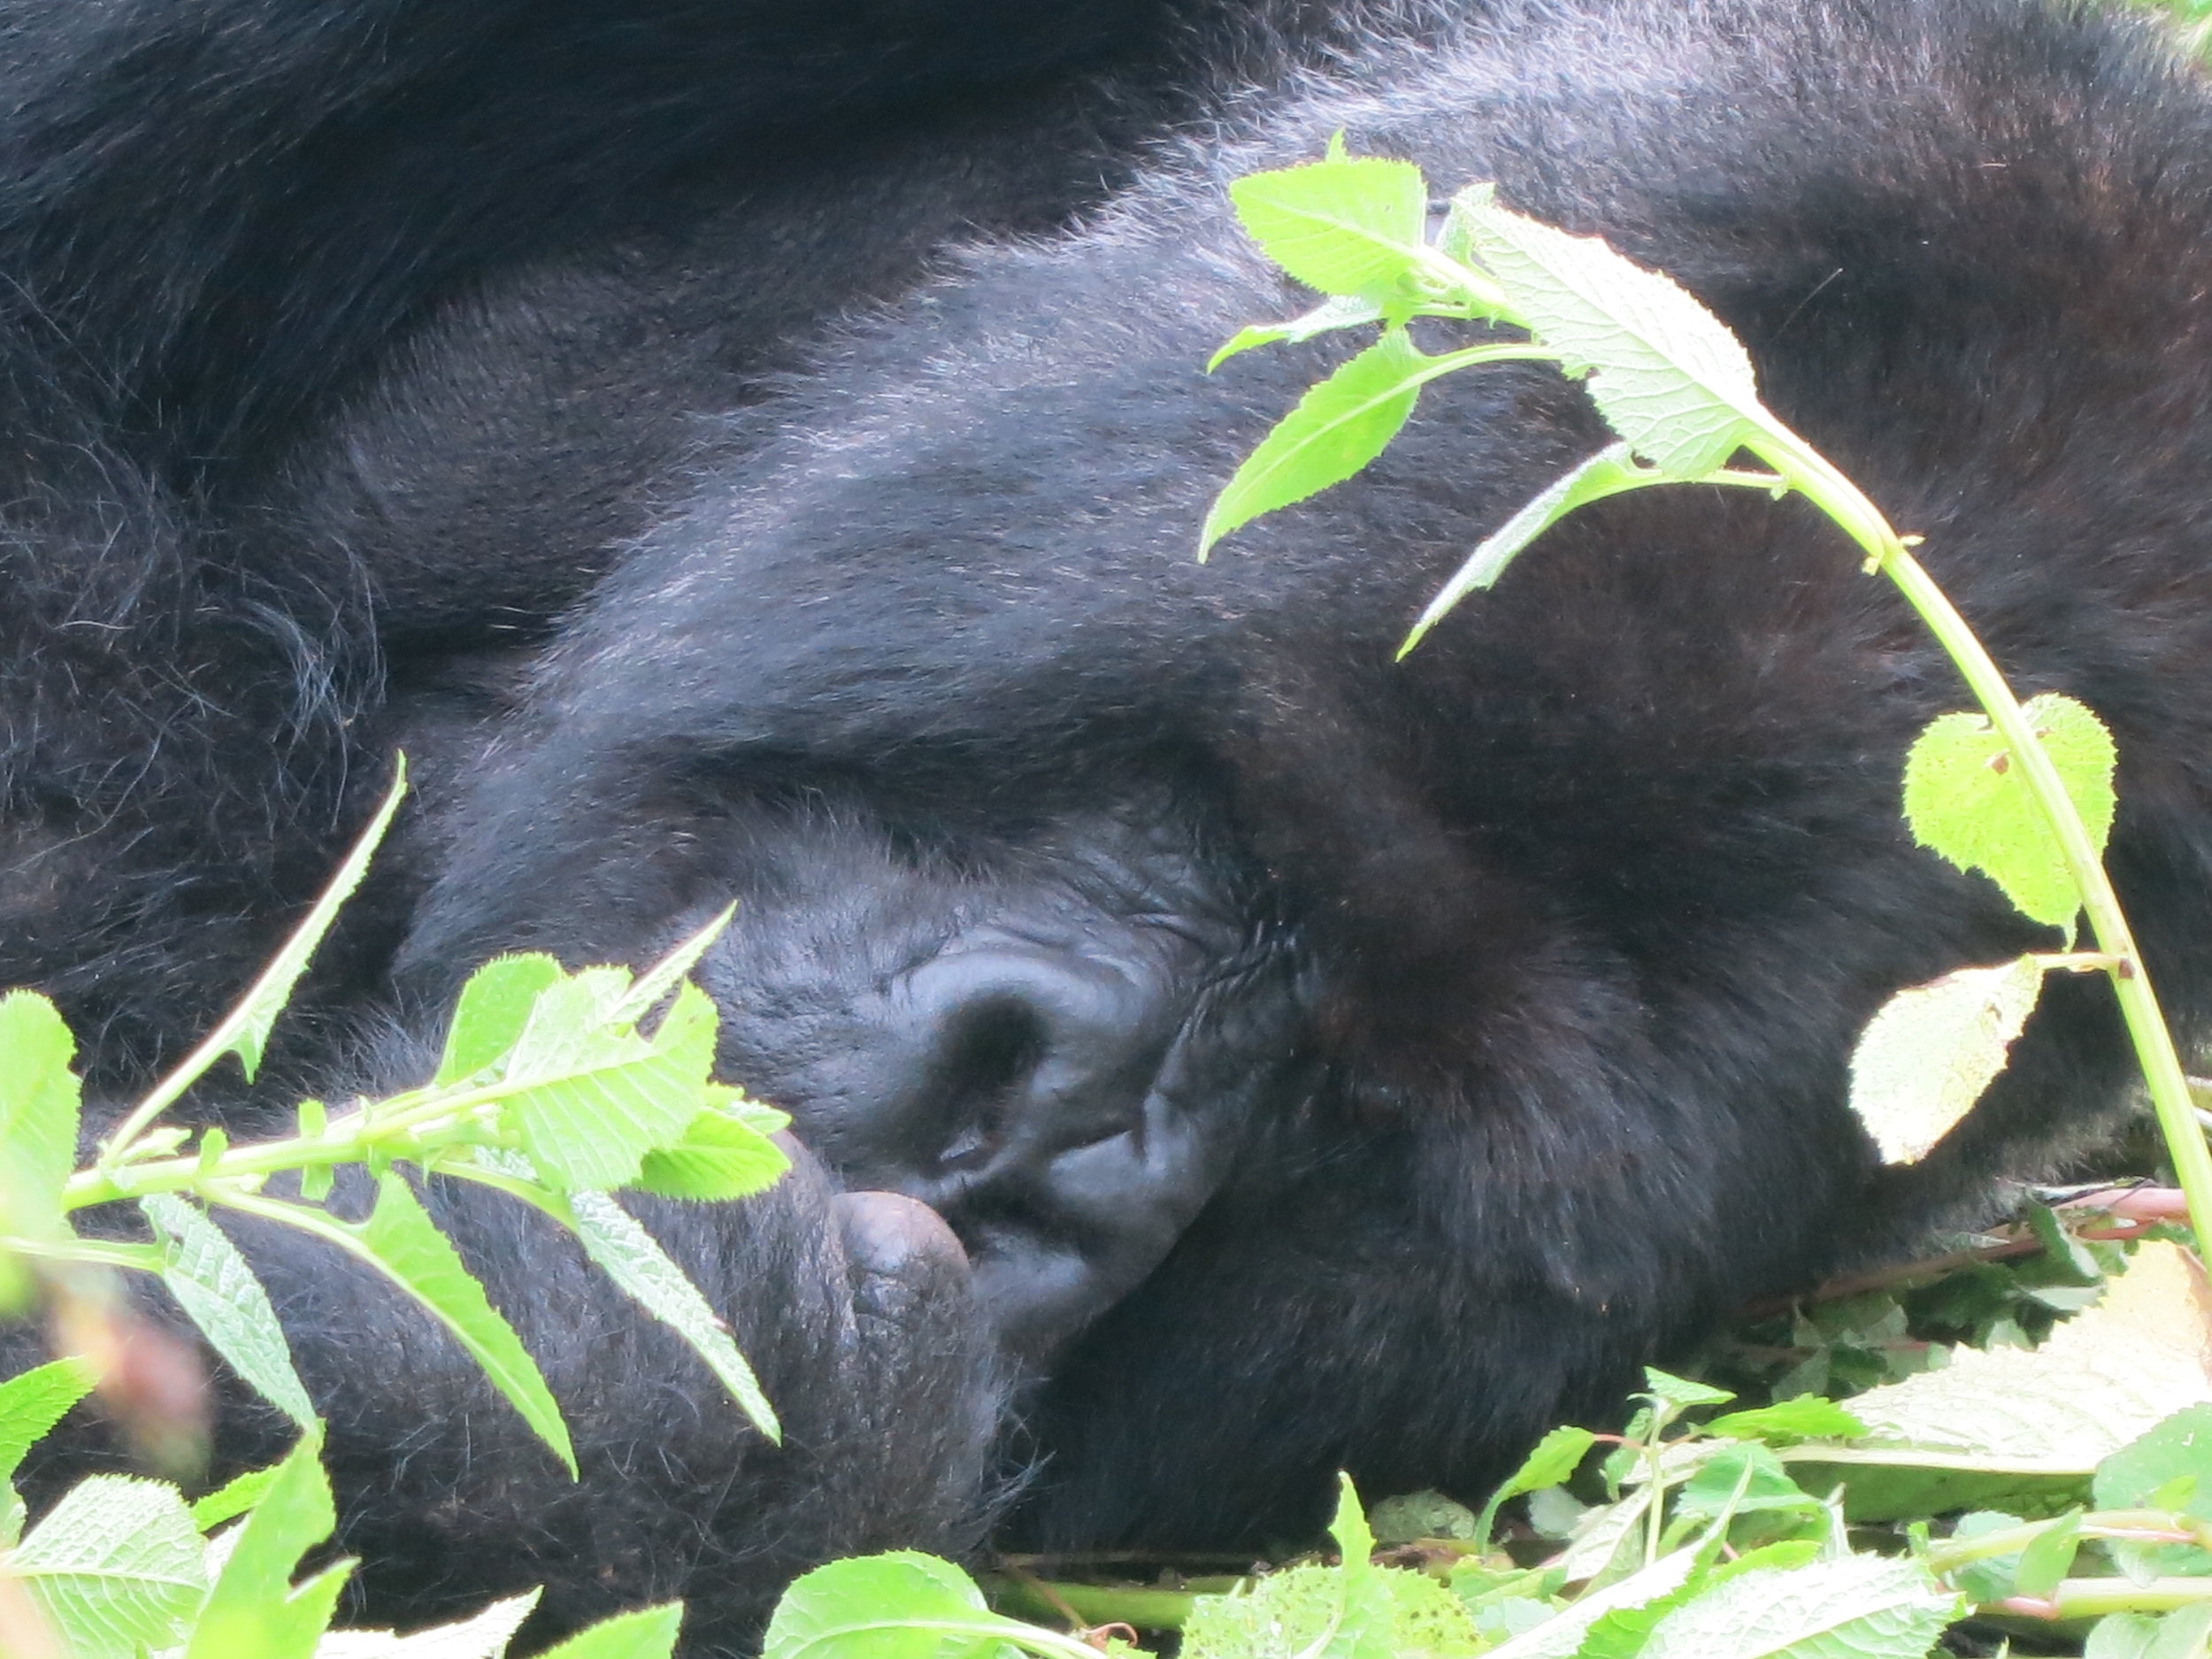 You can identify a gorilla by their unique nose patterns the same as you can identify humans by their fingerprints.